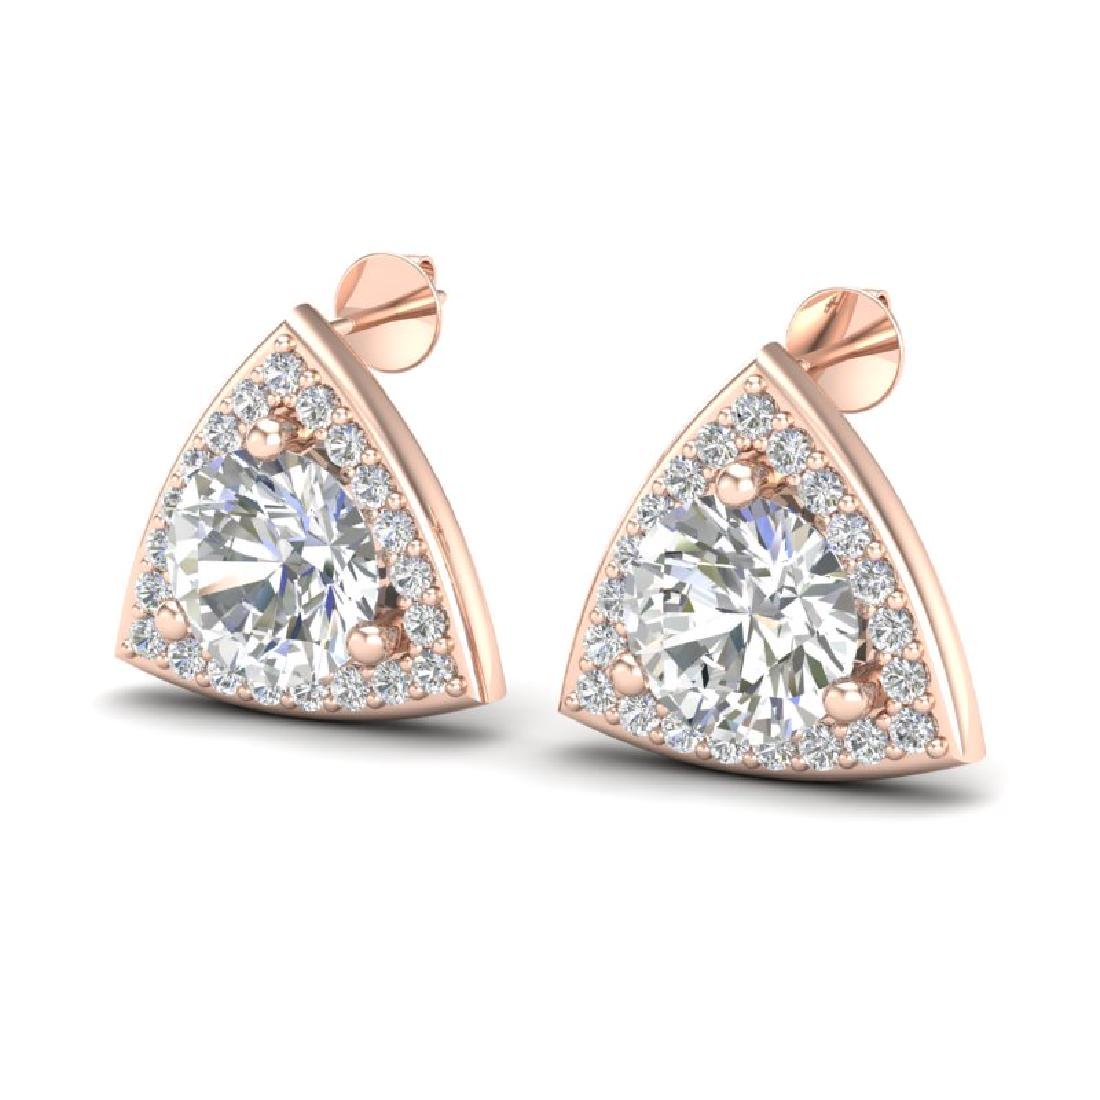 3 CTW VS/SI Diamond Stud Earrings 14K Rose Gold